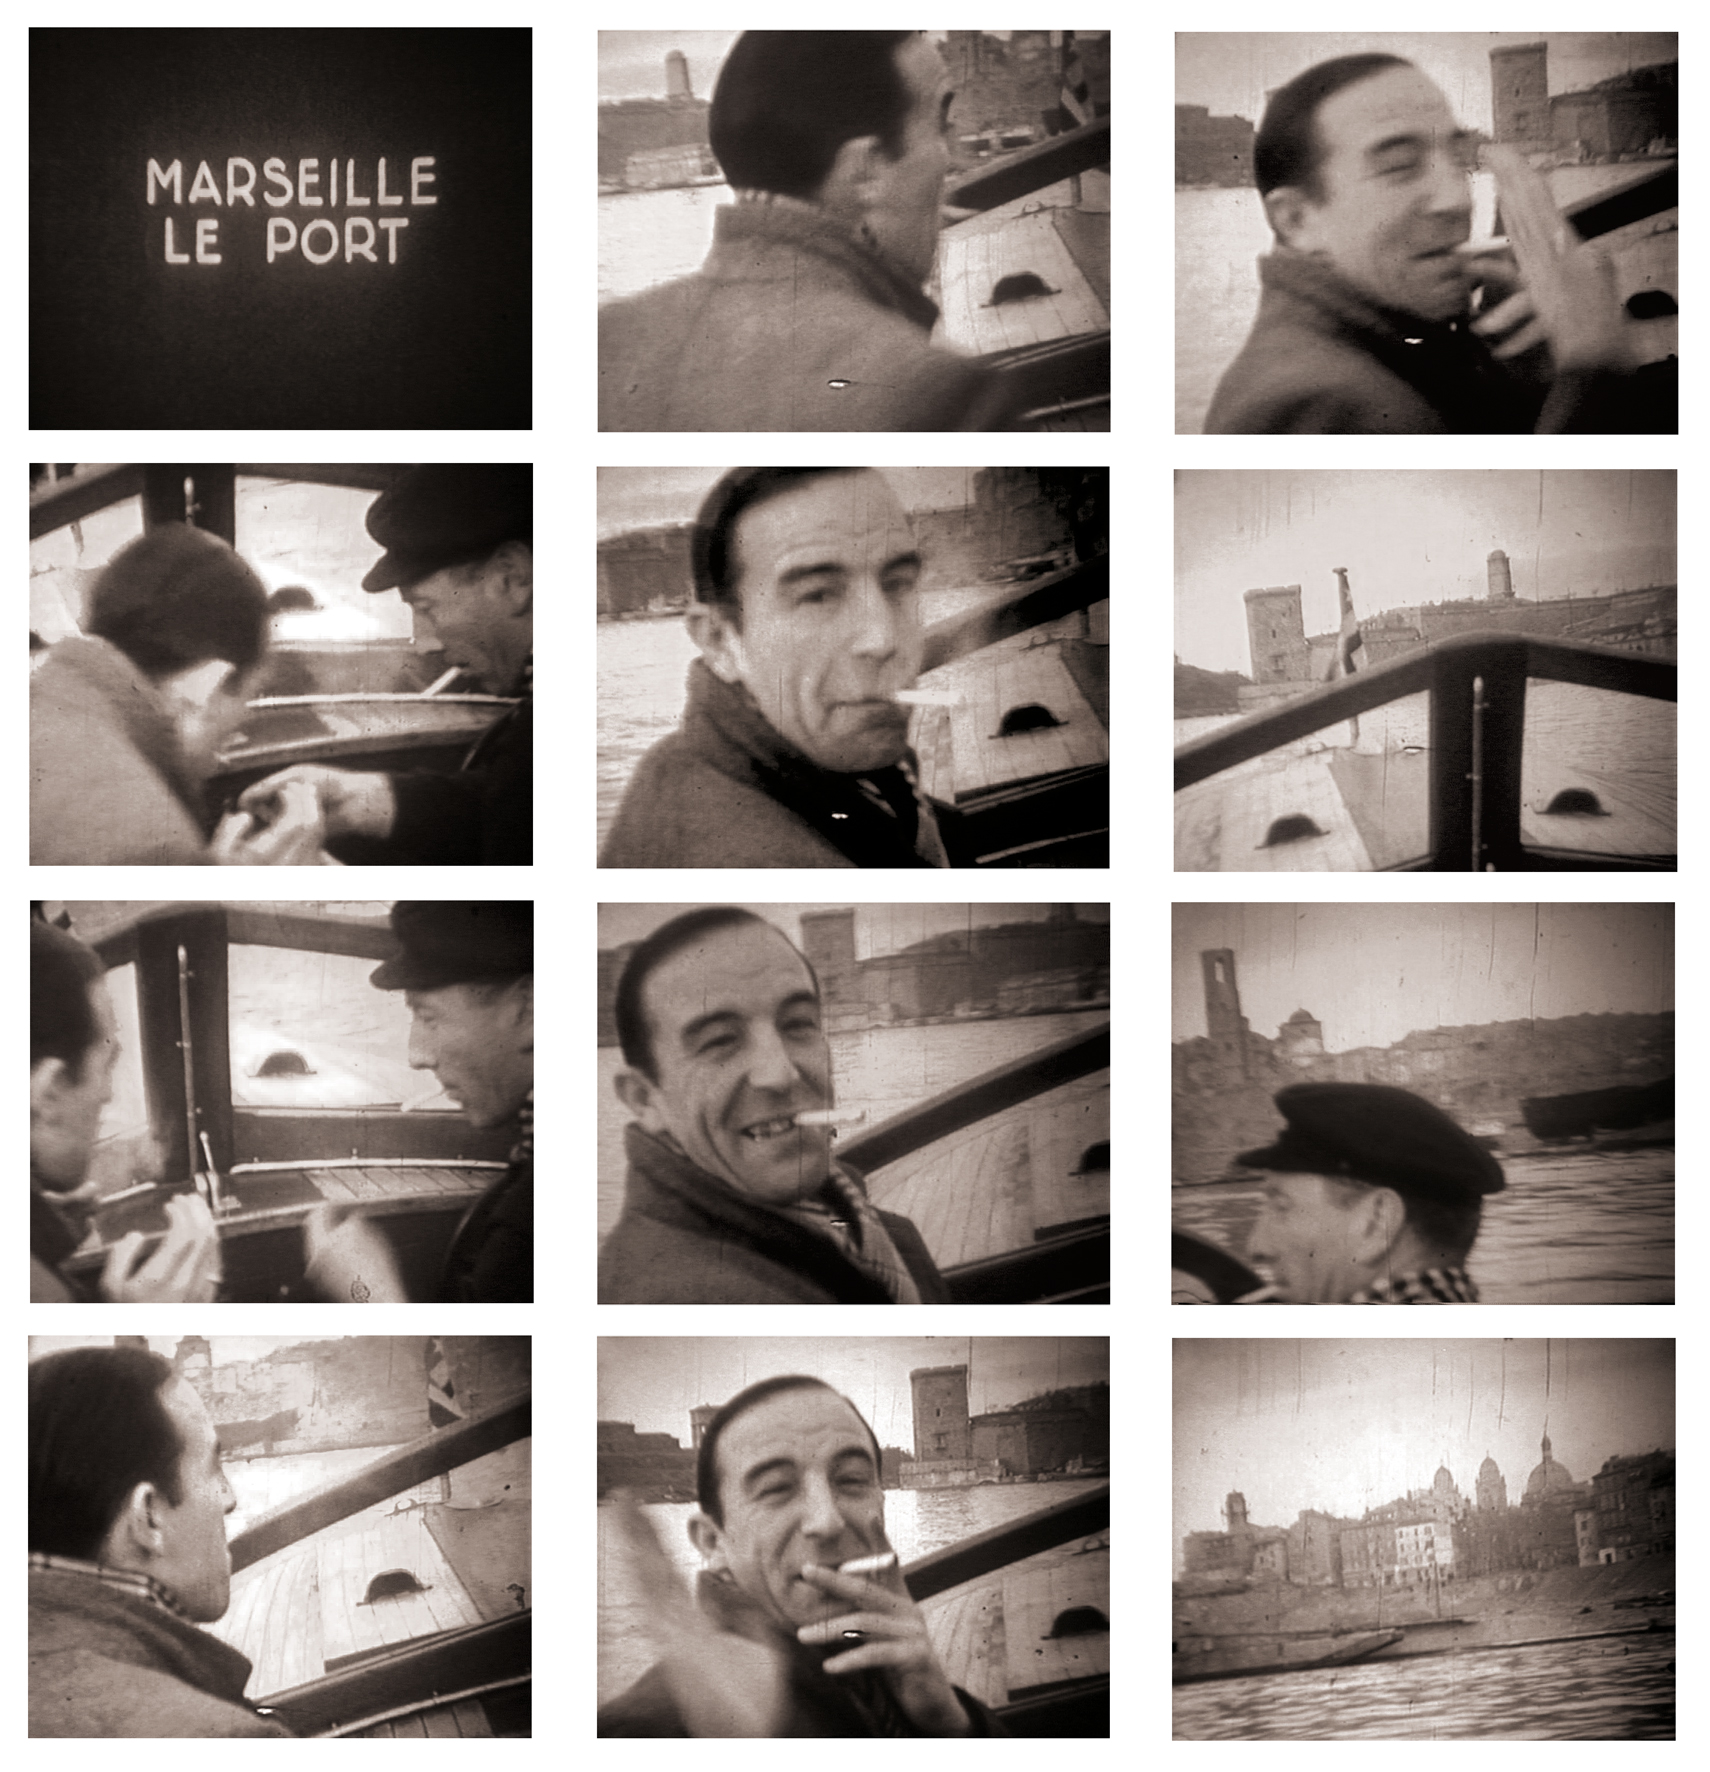 marseille-le-port-annees-40-projets 2014 cinememoire